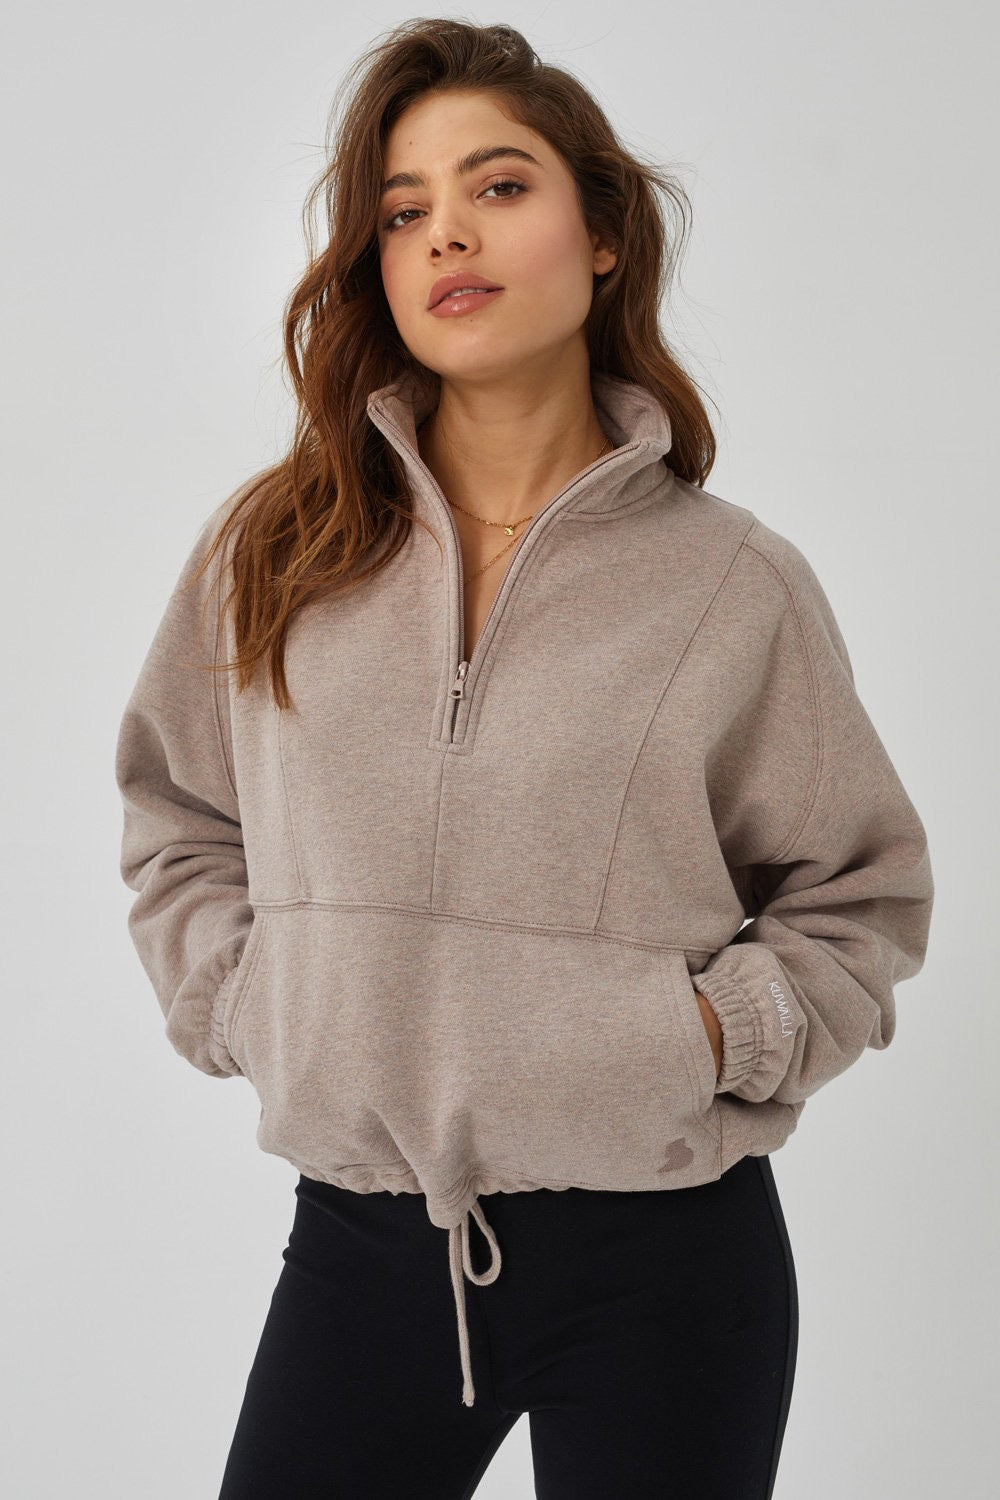 KuwallaTee Dusty Rose Oversized Half Zip